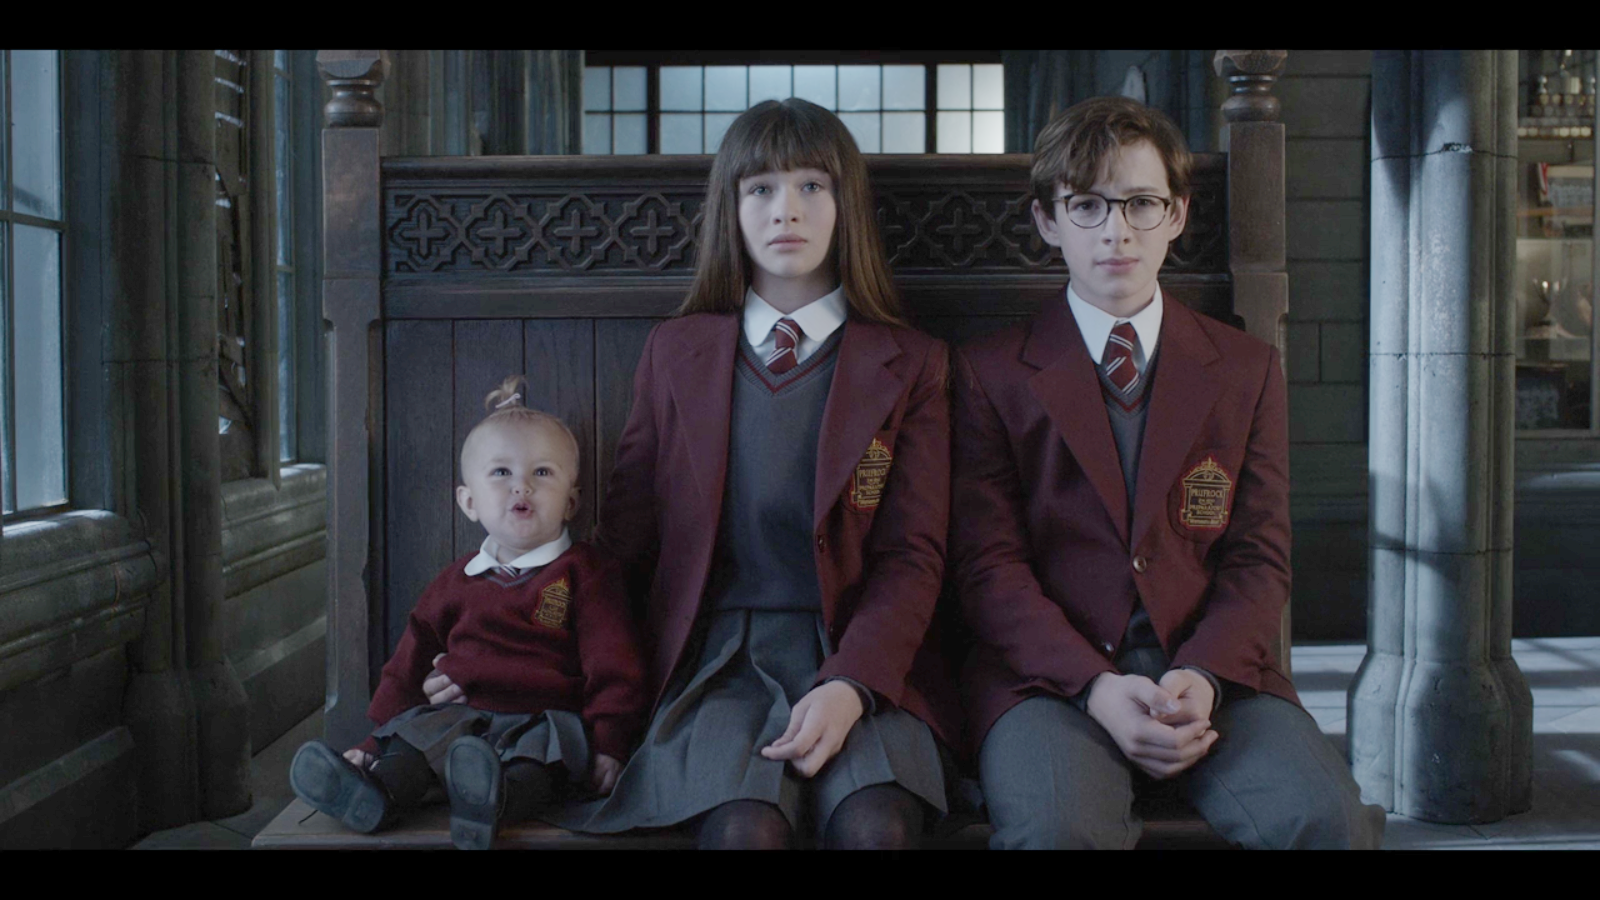 Violet, Klaus and Sunny Baudelaire, during their time at boarding school. This photograph was most likely taken by a Netflix henchperson.